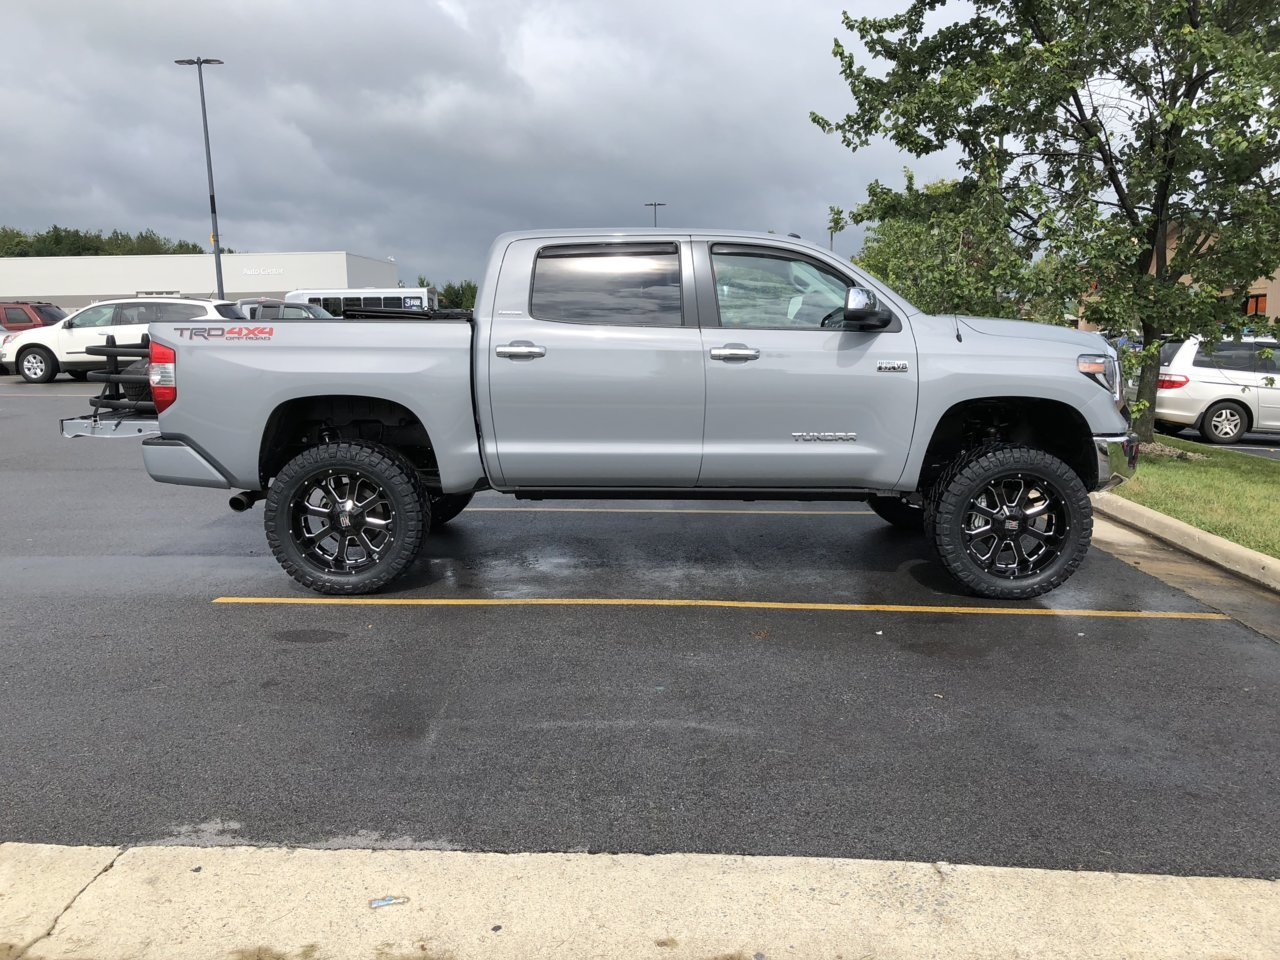 Fender Flares Or No Flares Opinions Wanted Toyota Tundra Forum